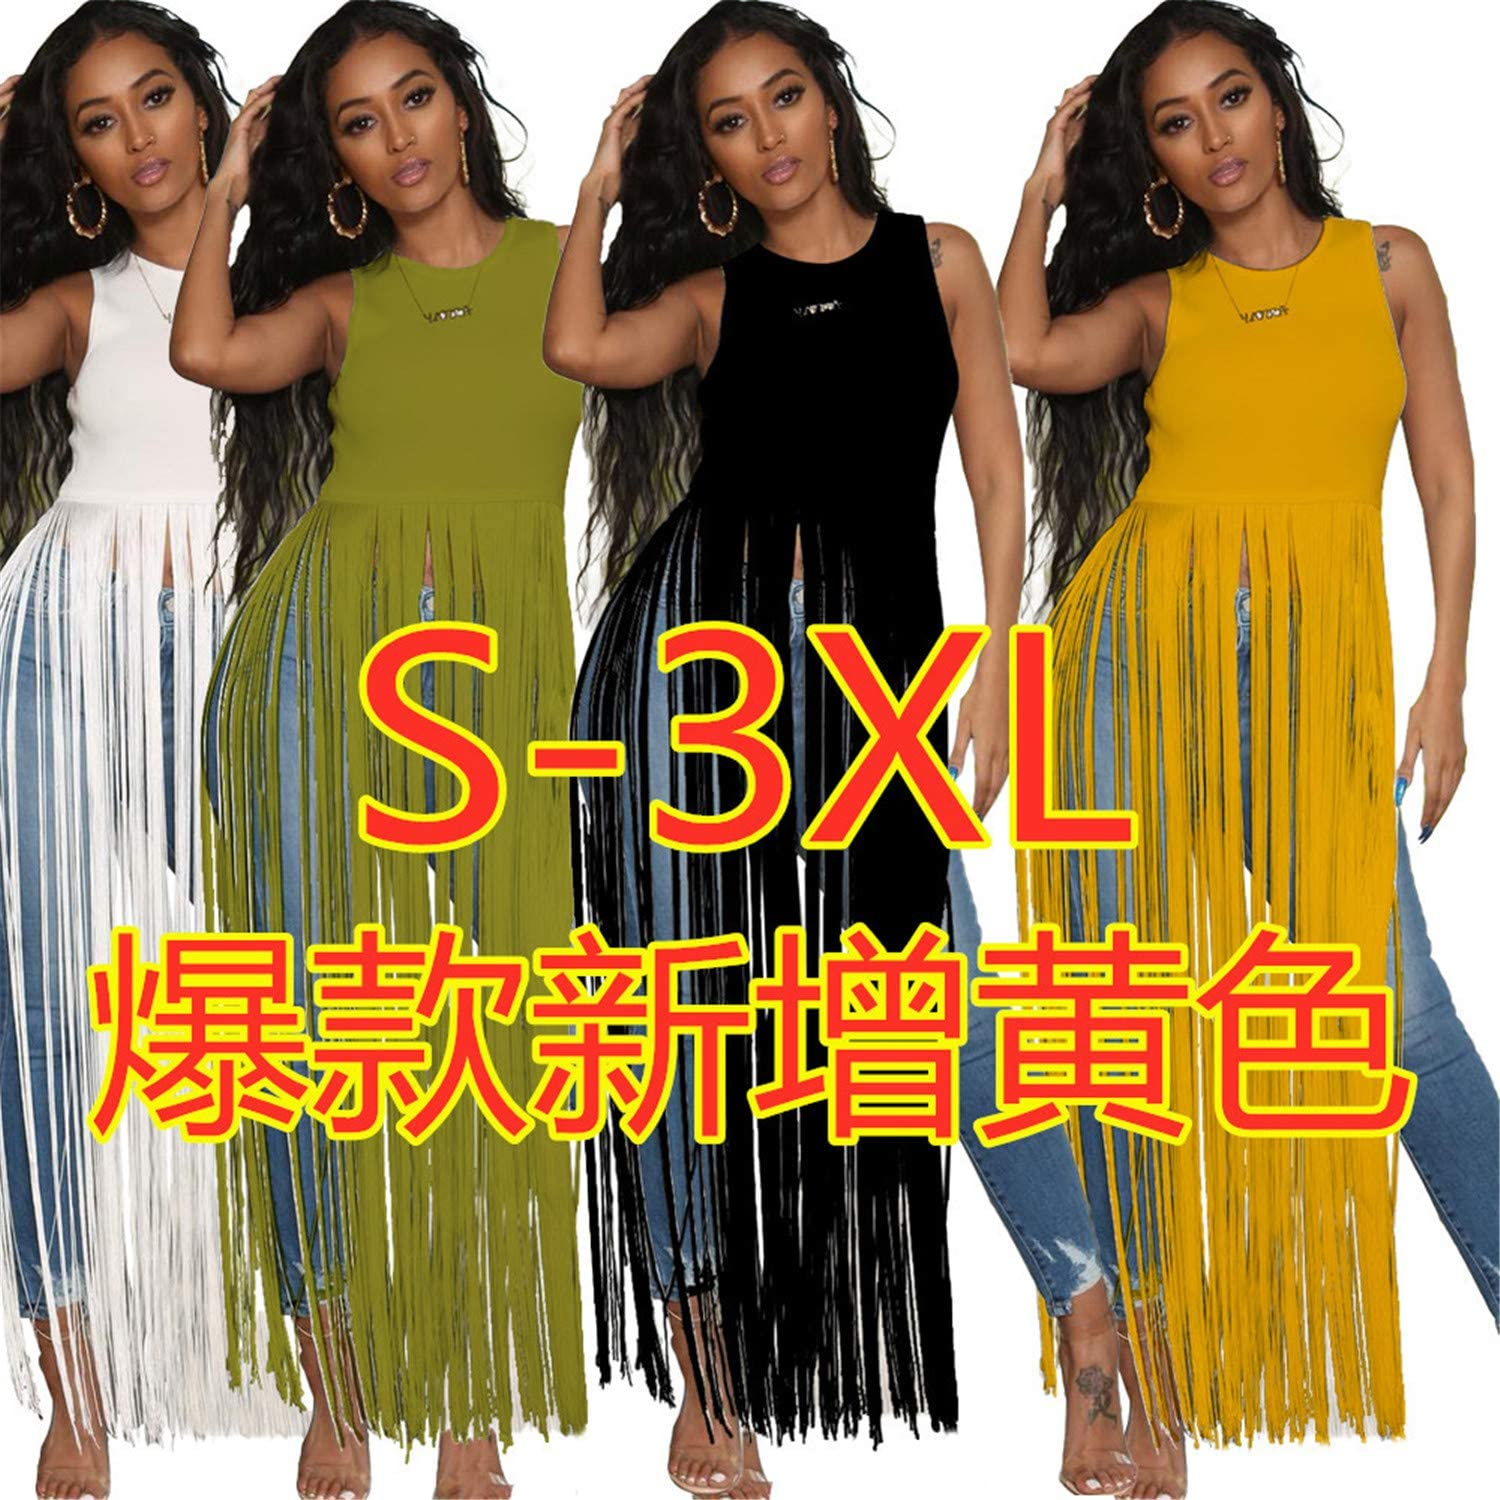 Andongnywell Women's Vest Tops Sleeveless Tassels Solid Color Waistcoat Top Fringed Blouse Shirts Tunics